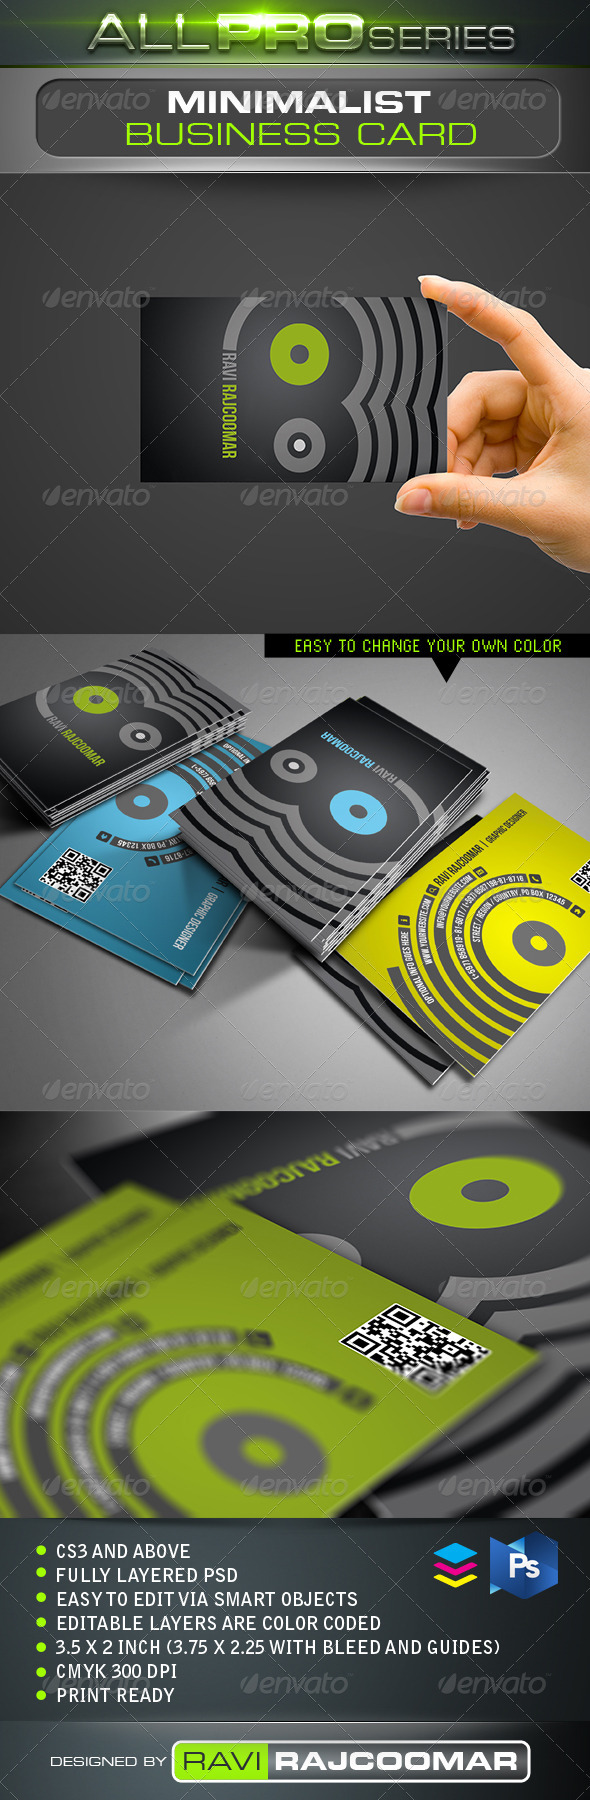 Minimalist Business Card - Business Cards Print Templates